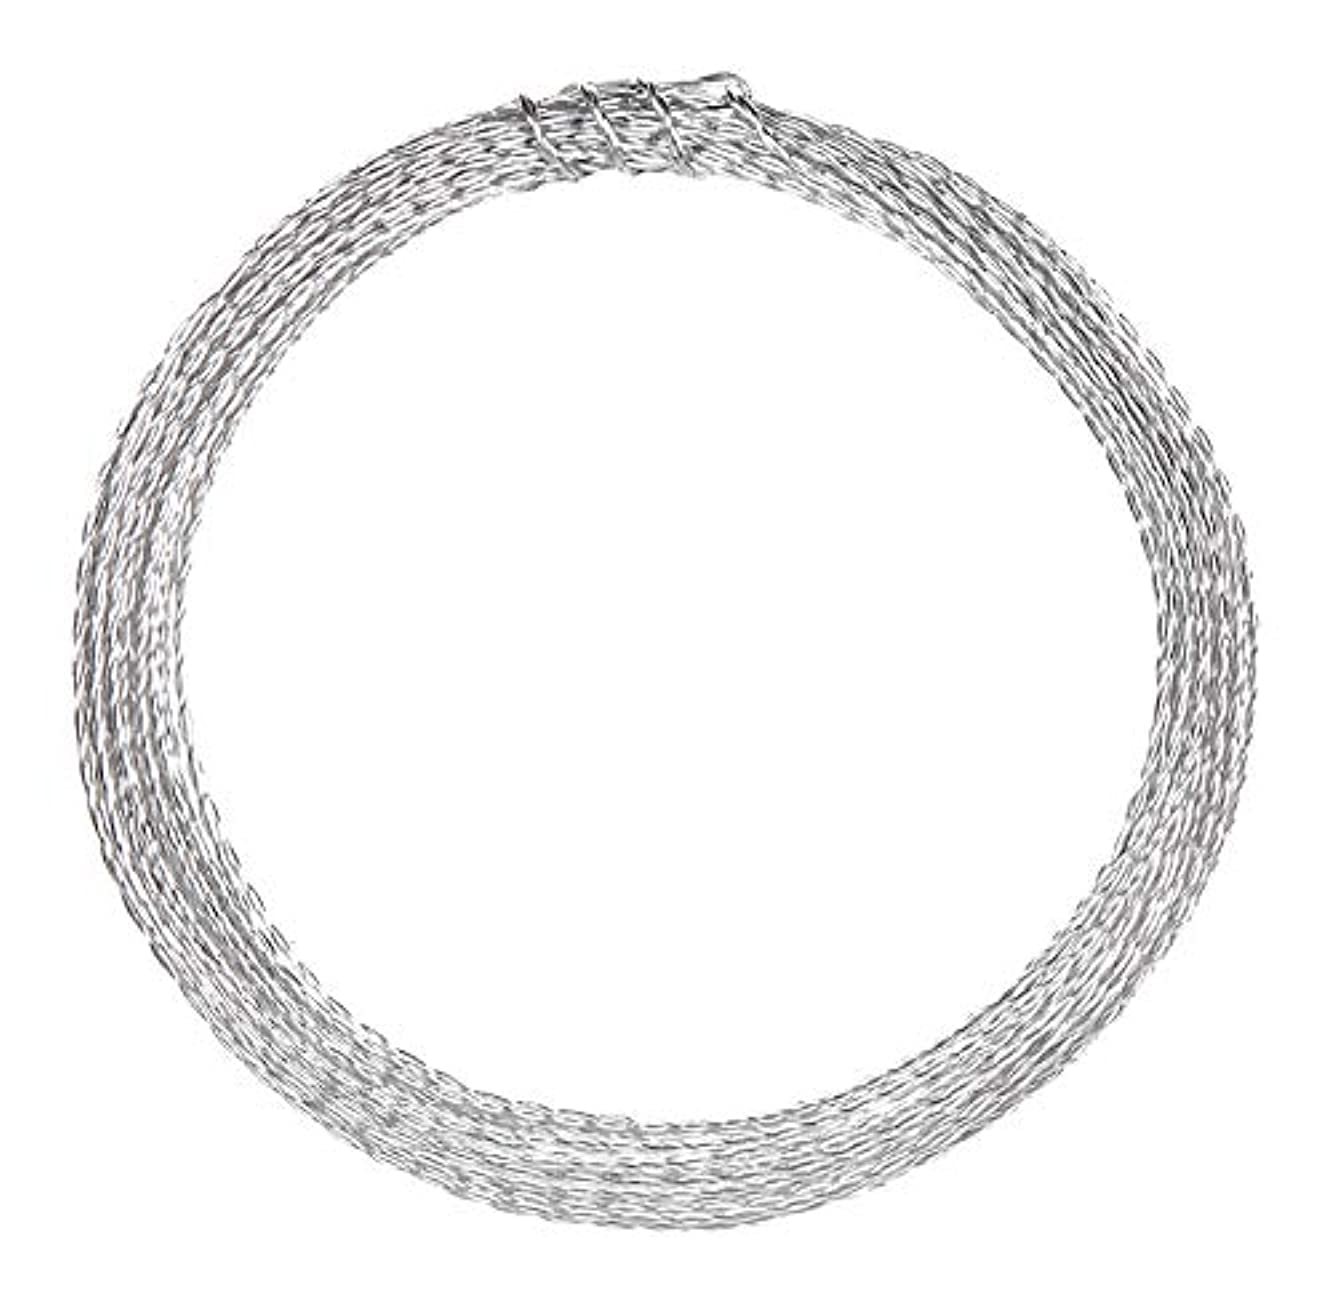 Jewelry Designer 1999-4156 Aluminum Jewelry Wire Silver 2Ply 24G 6Yds